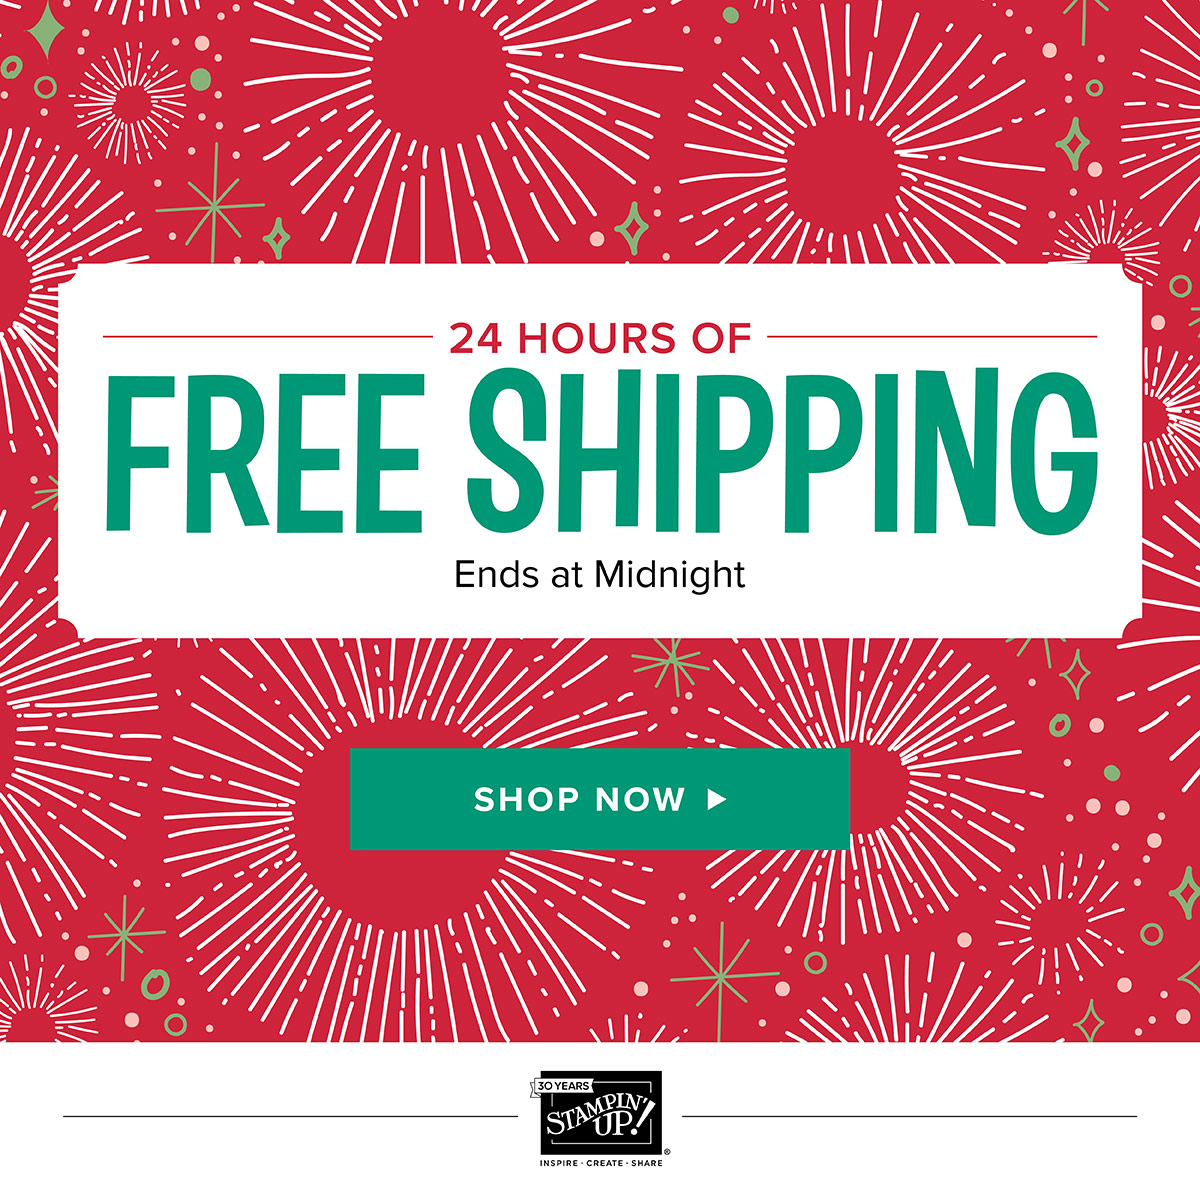 Banner showing Free Stampin' Up! shipping